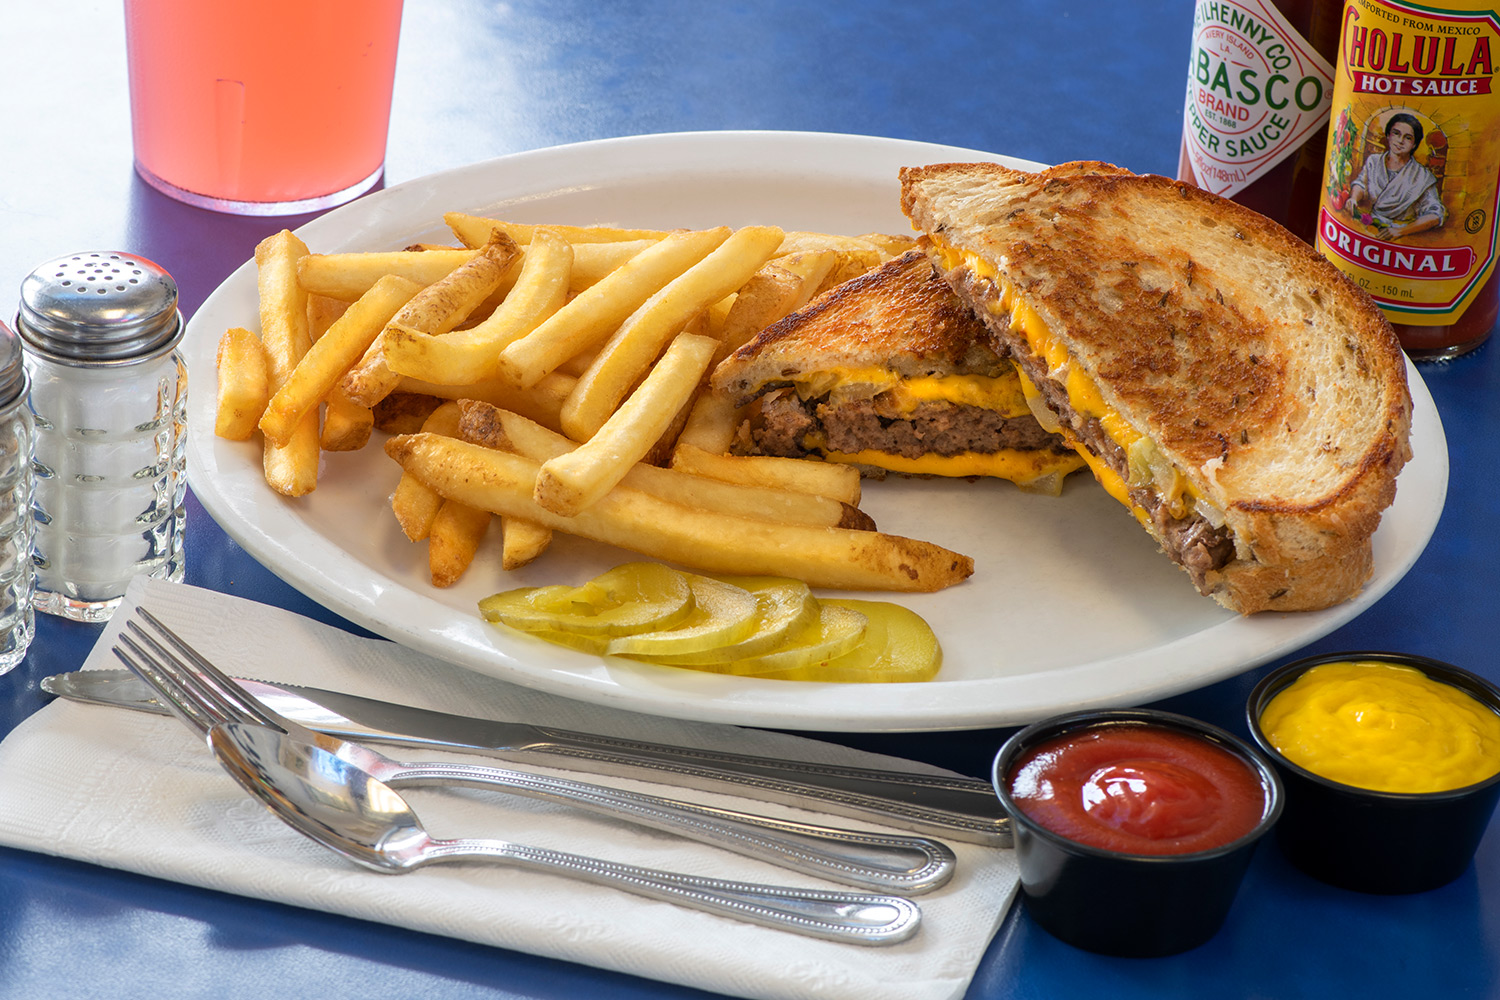 Patty Melt with french fries and pickles